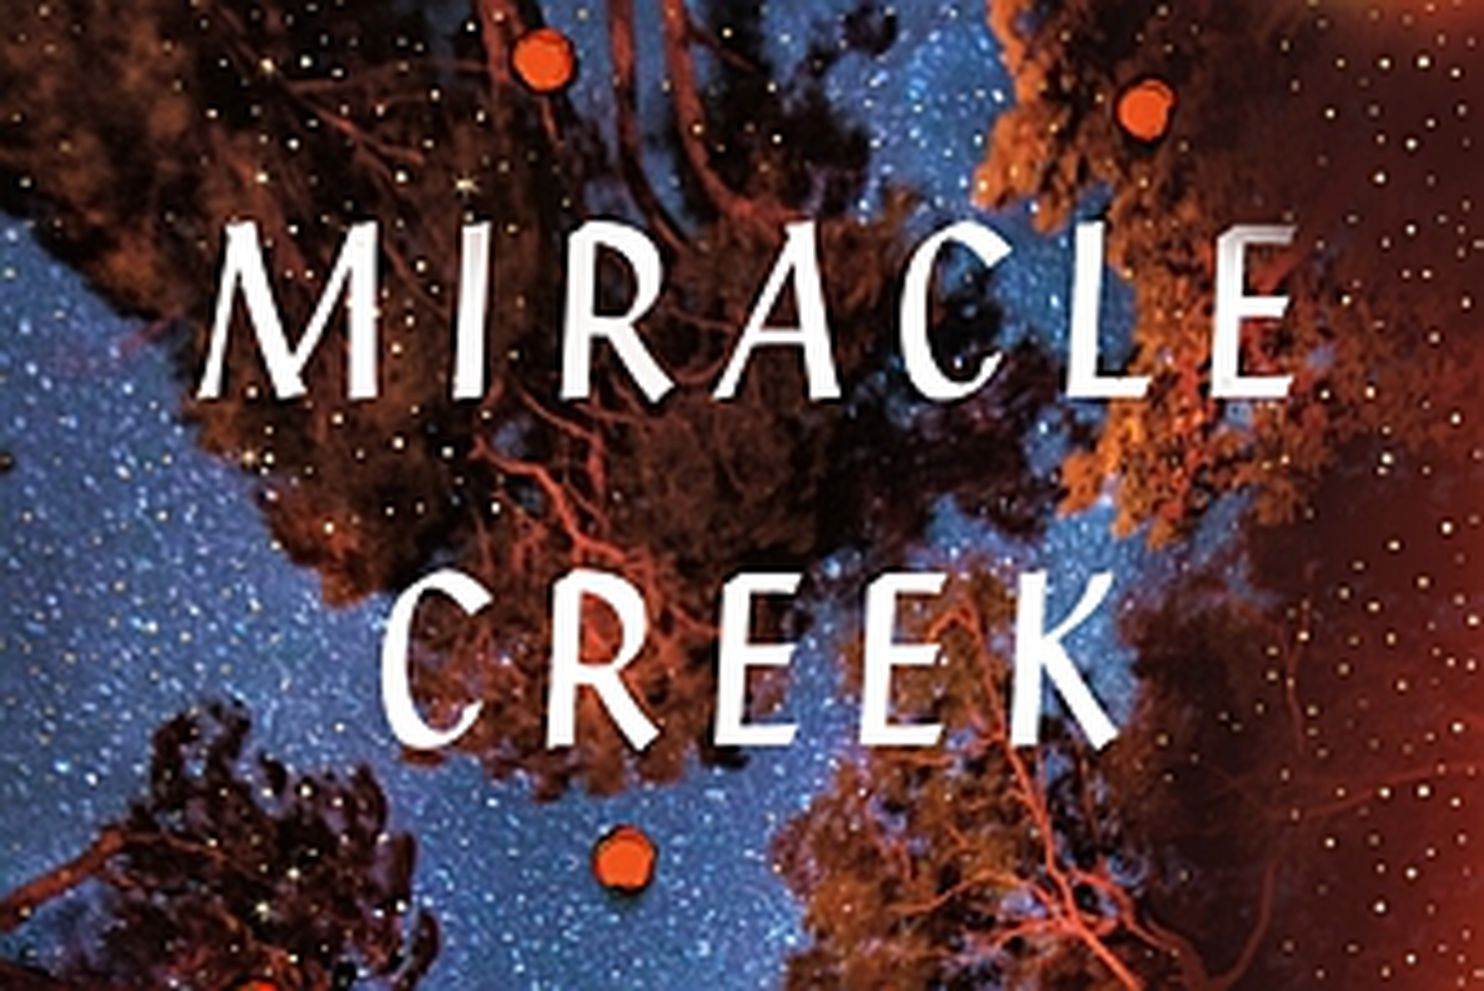 Andrea's Pick of the Week: Miracle Creek by Angie Kim